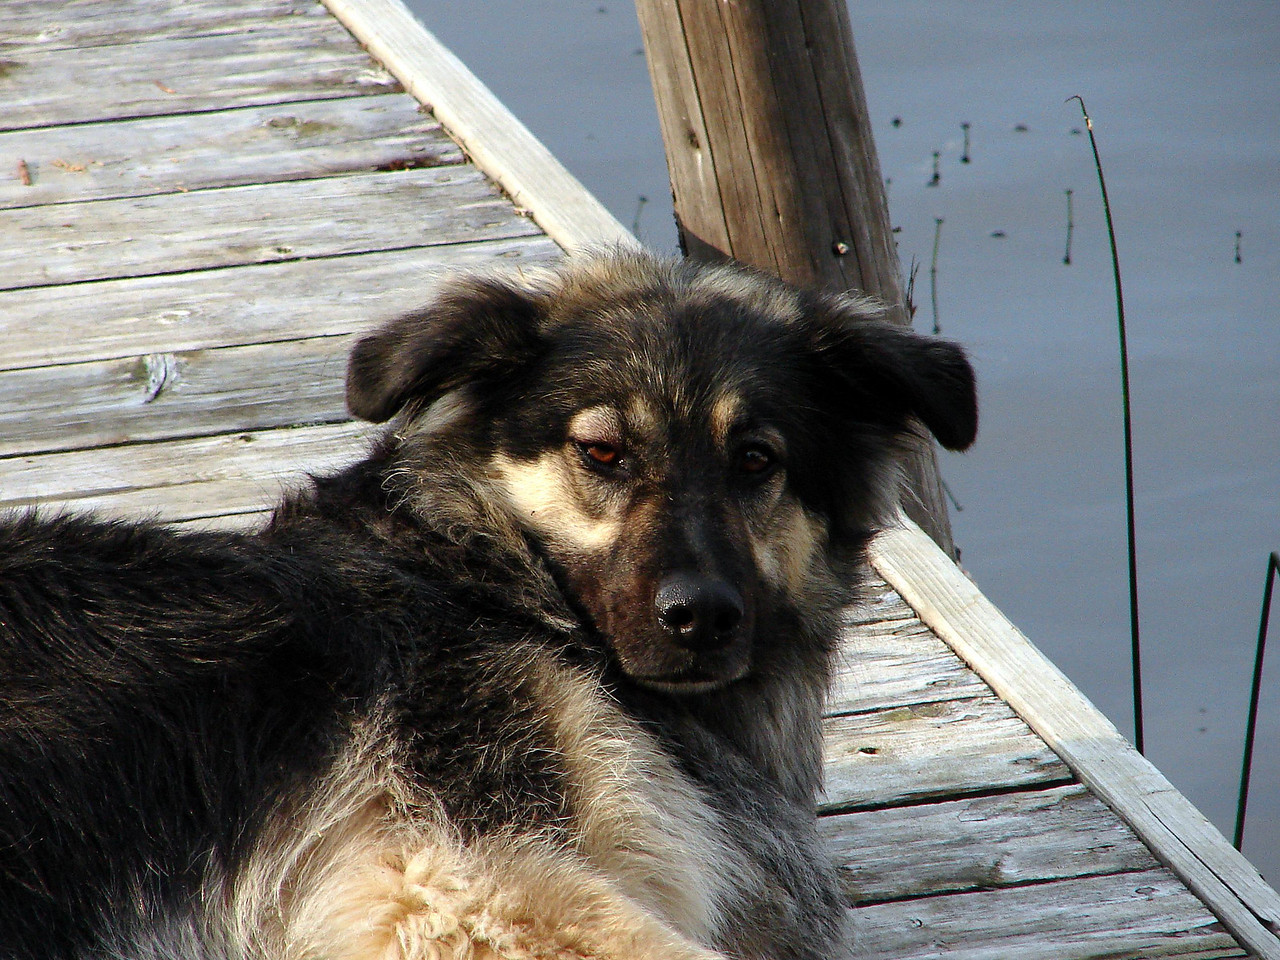 Bailey looks like he was being disturbed from his nap on the dock